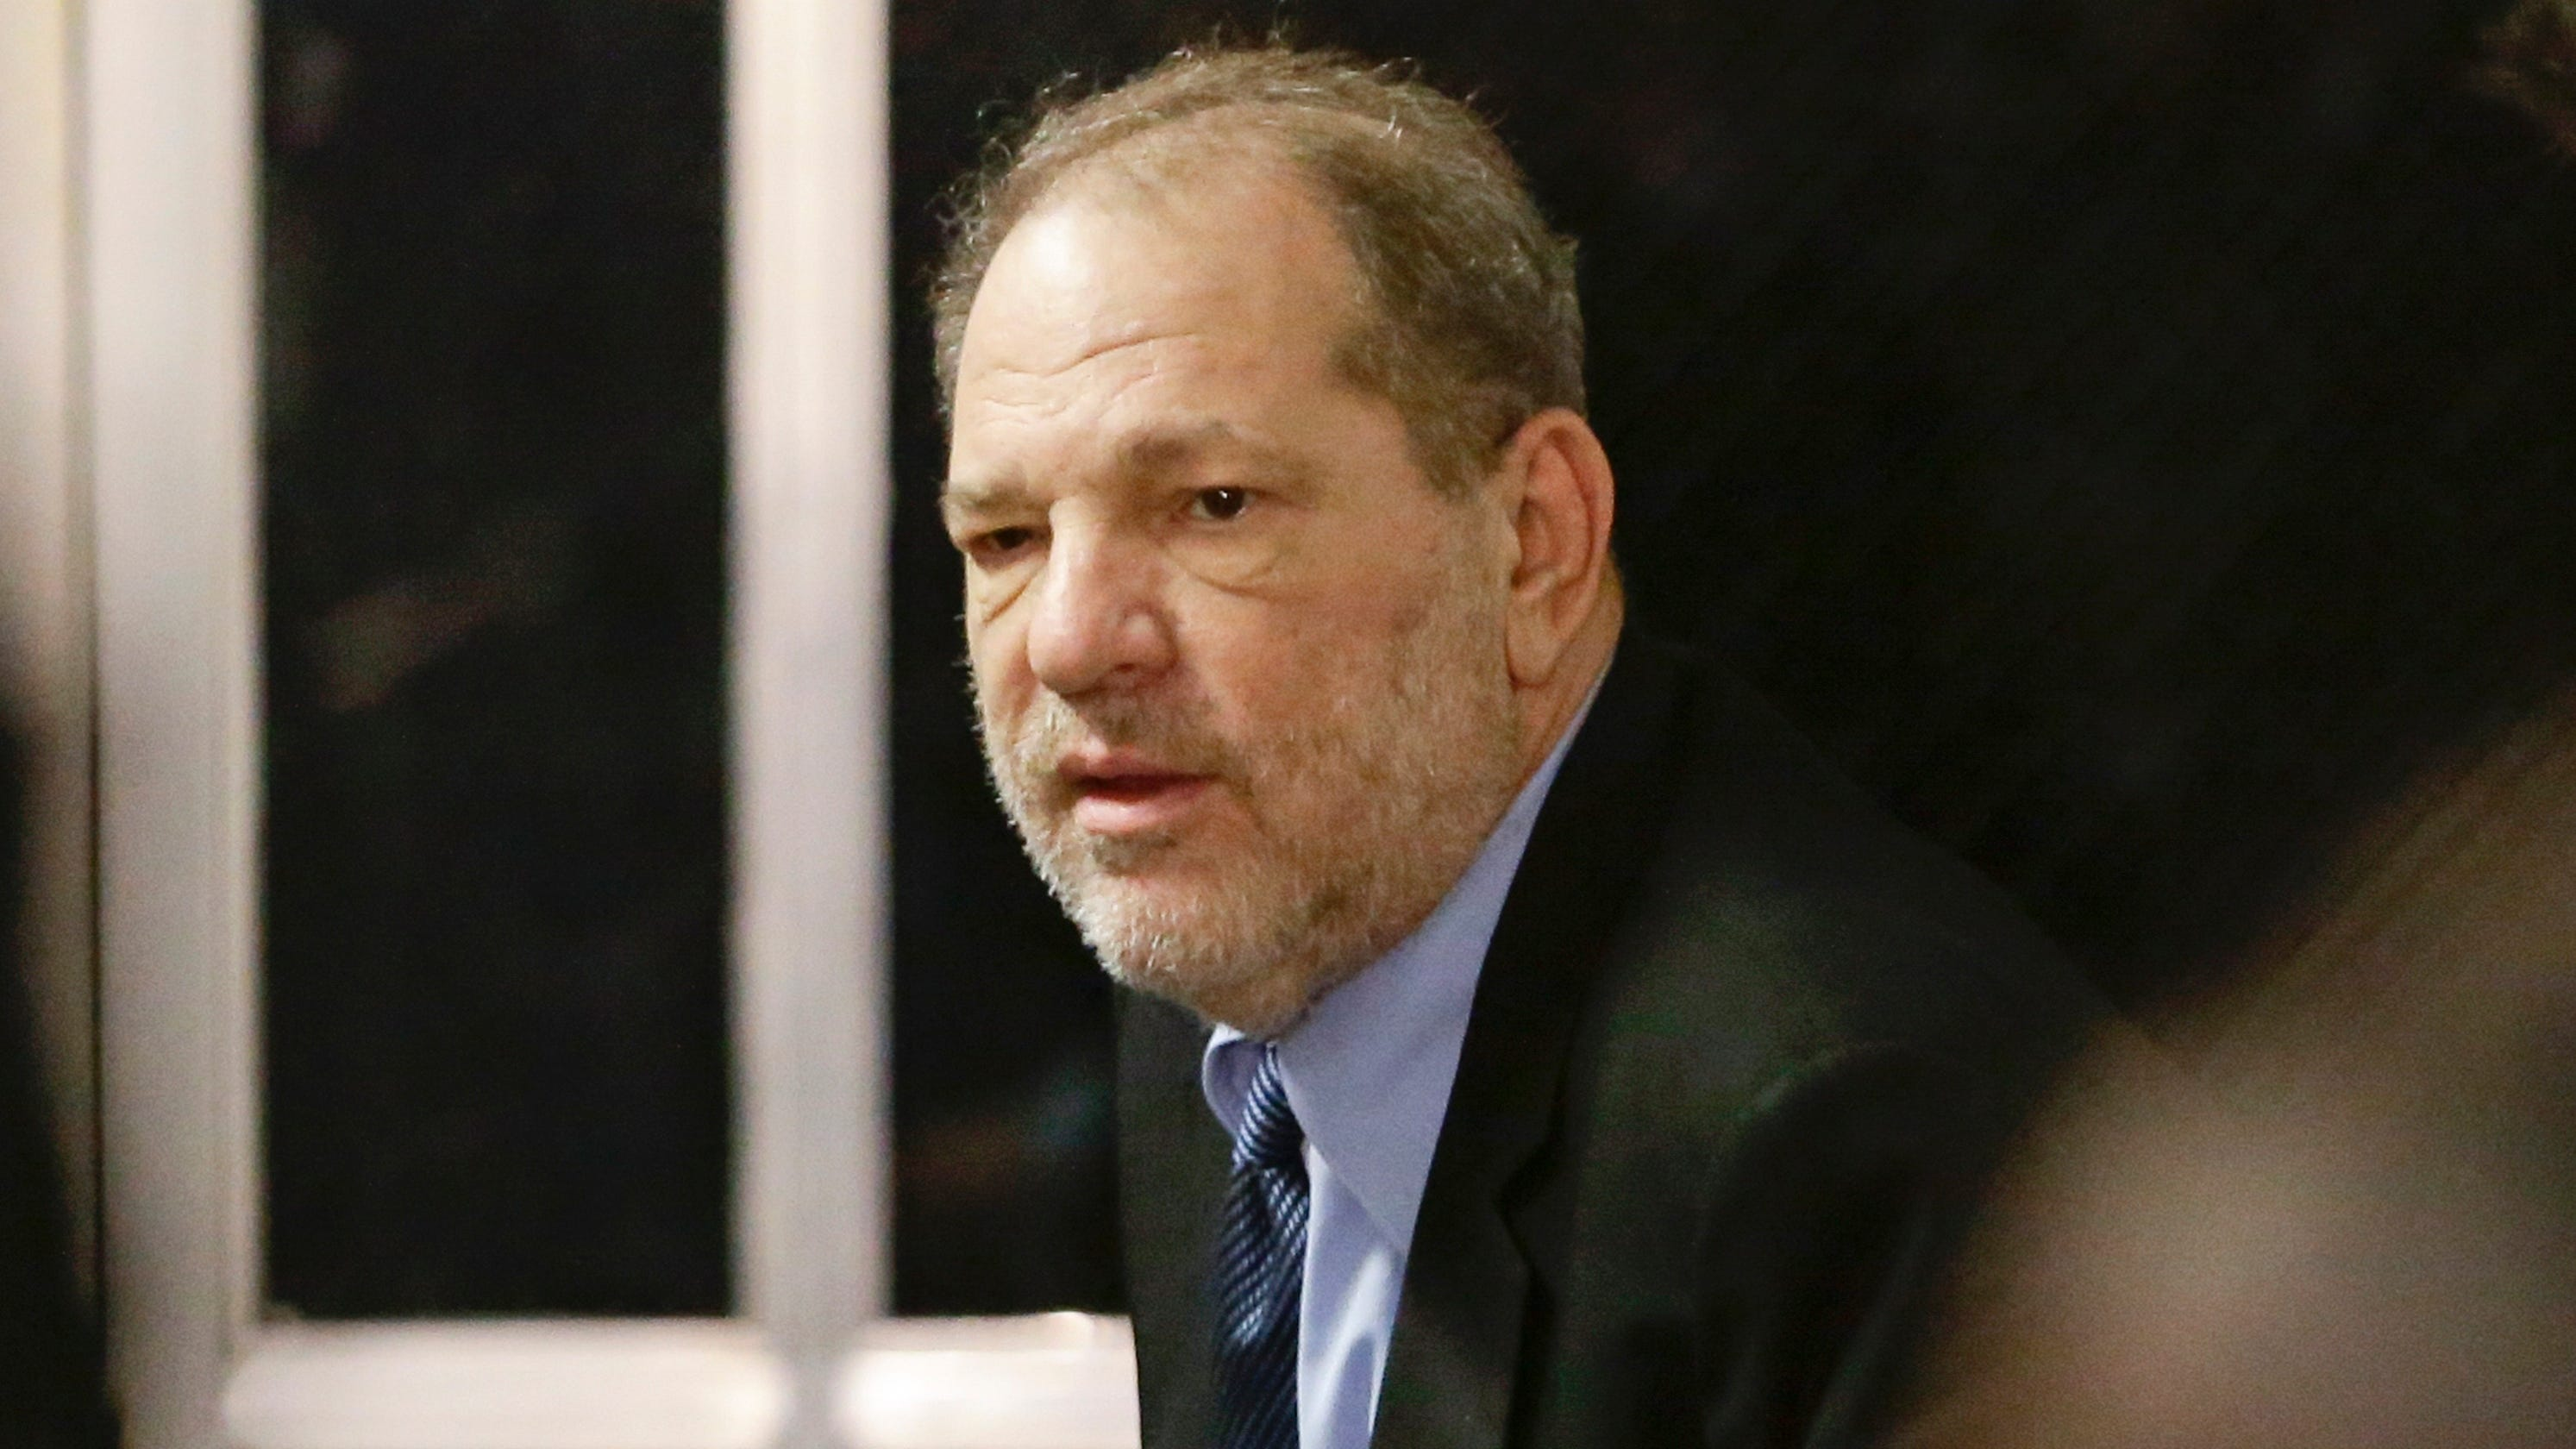 Harvey Weinstein victims deliver emotional statements at prison sentence hearing